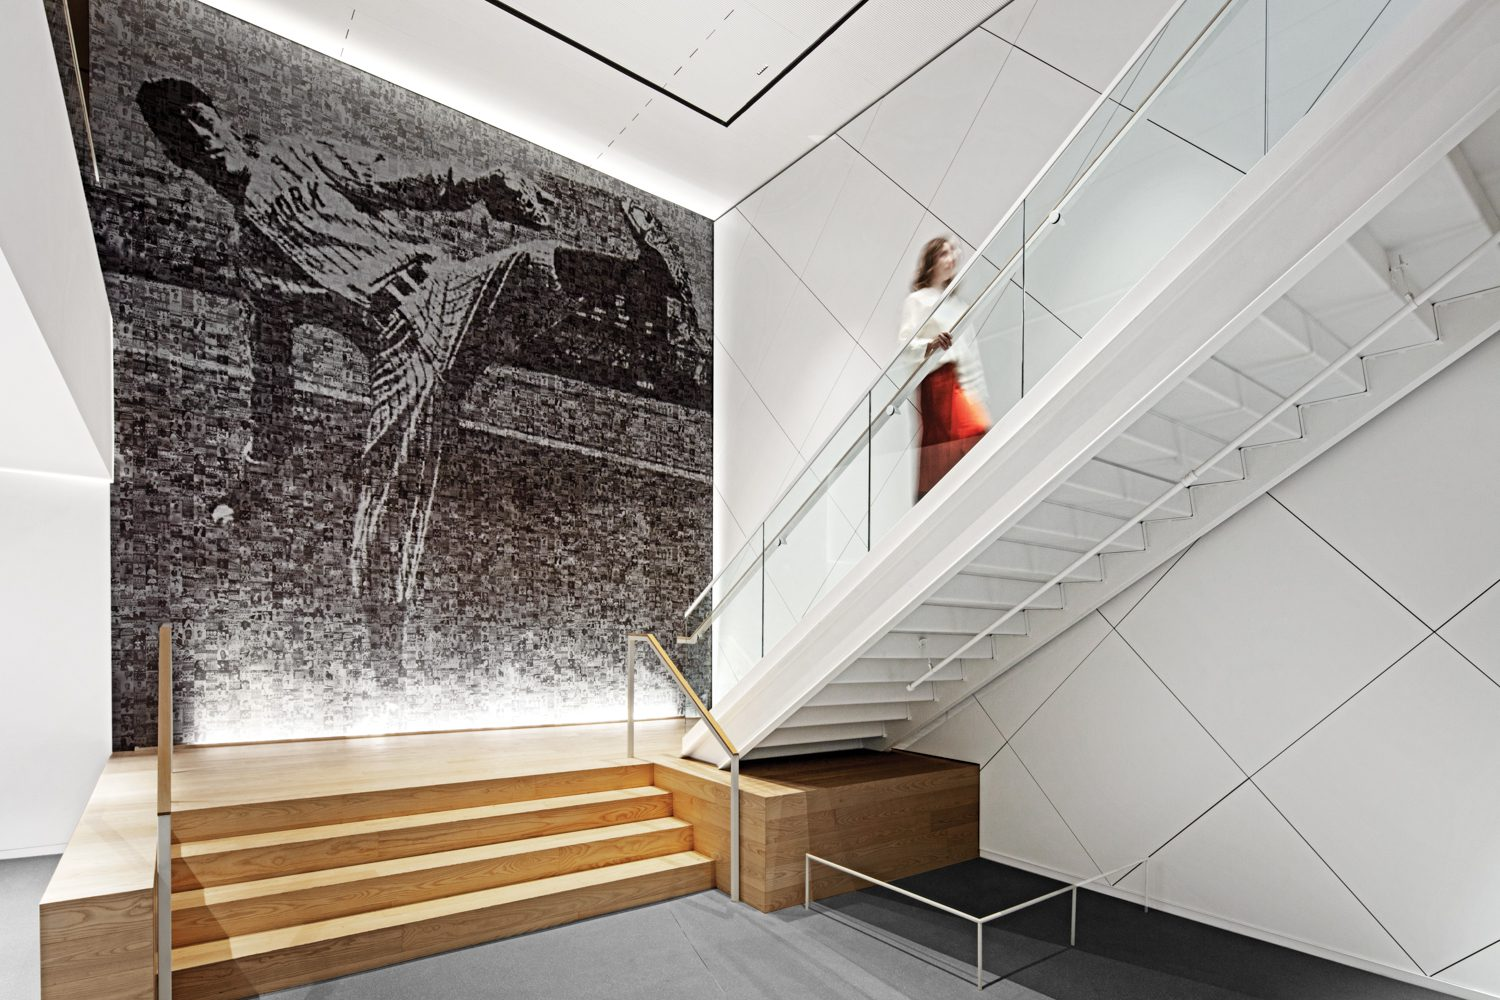 A mosaic of Hall of Fame pitcher Satchel Paige composed of thousands of archival photos of Negro league players anchors a staircase.